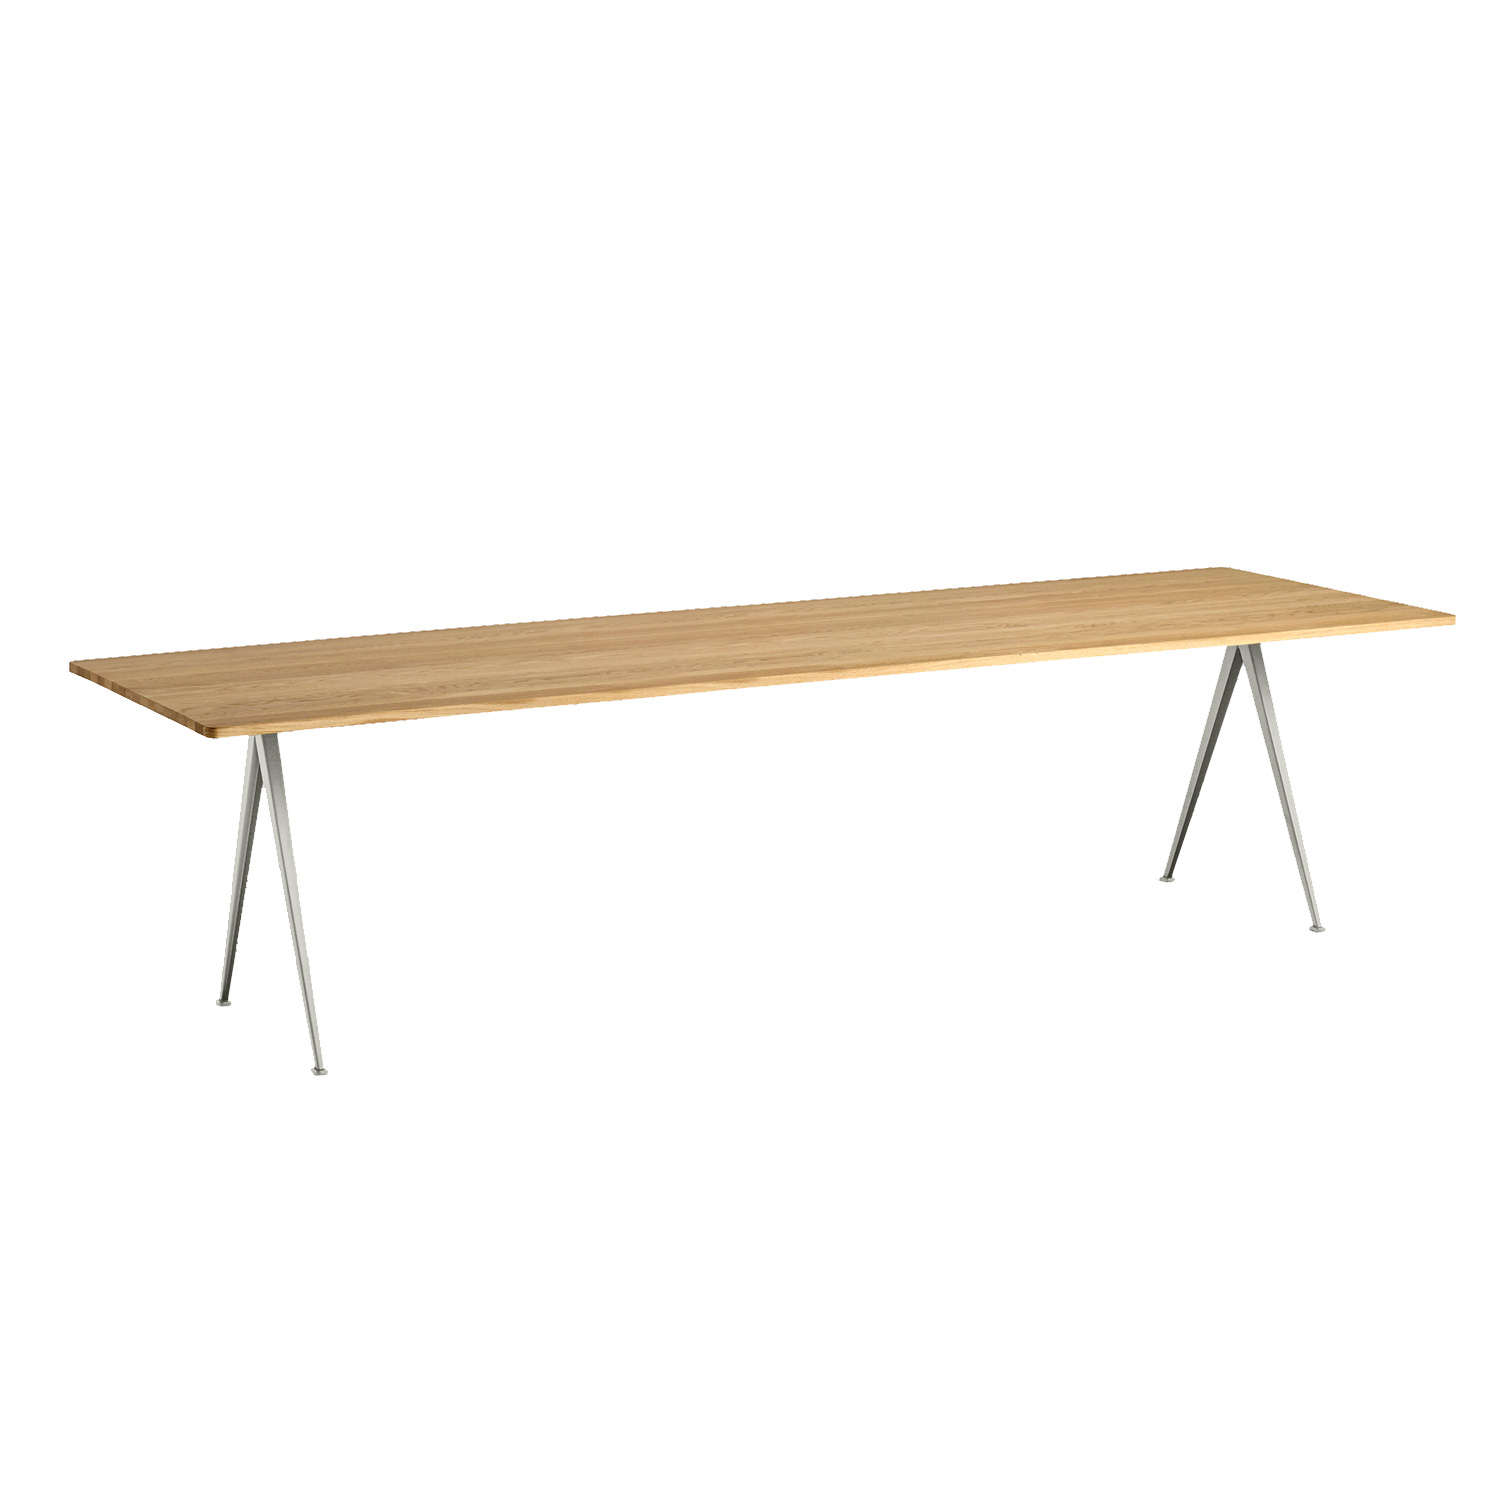 Pyramid table 02 300x85, beige frame/clear